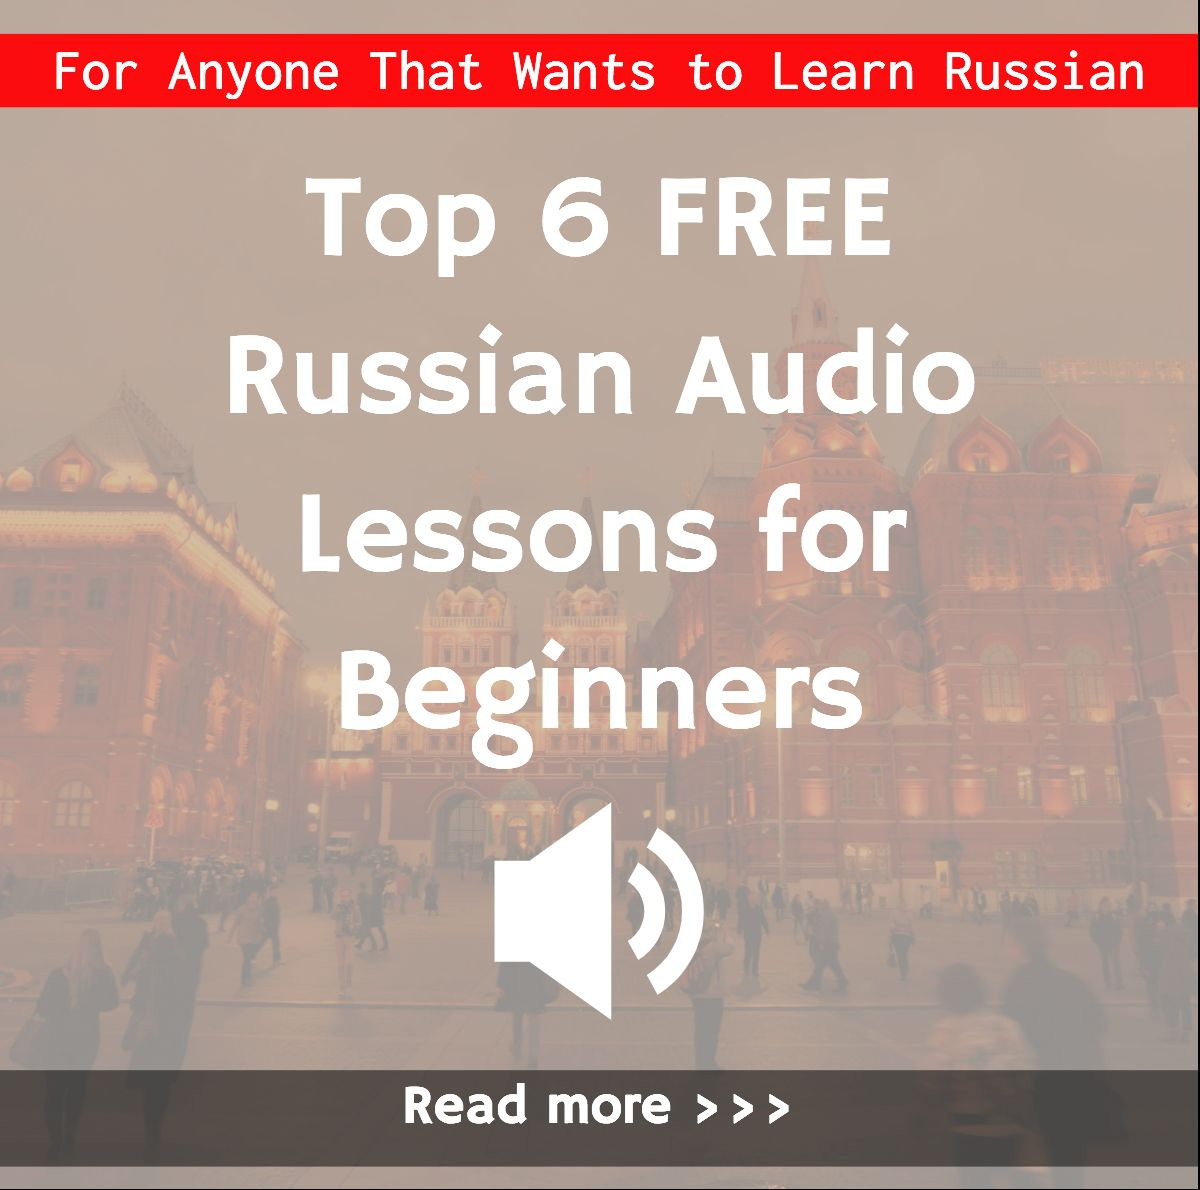 Top 6 Free Russian Audio Lessons Play Amp Download